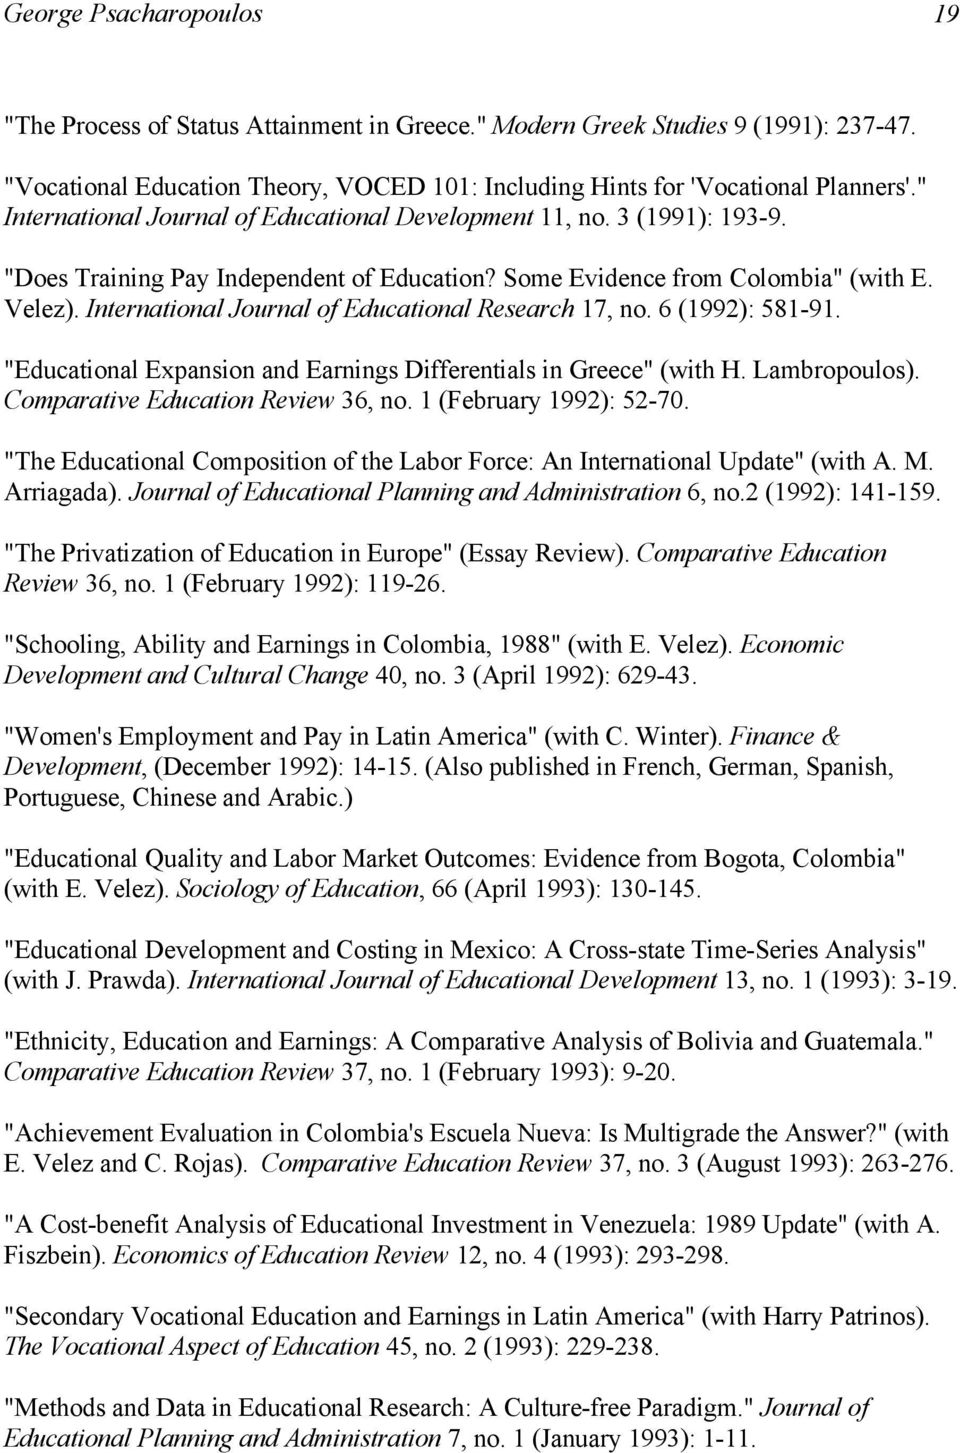 "International Journal of Educational Research 17, no. 6 (1992): 581-91. ""Educational Expansion and Earnings Differentials in Greece"" (with H. Lambropoulos). Comparative Education Review 36, no."